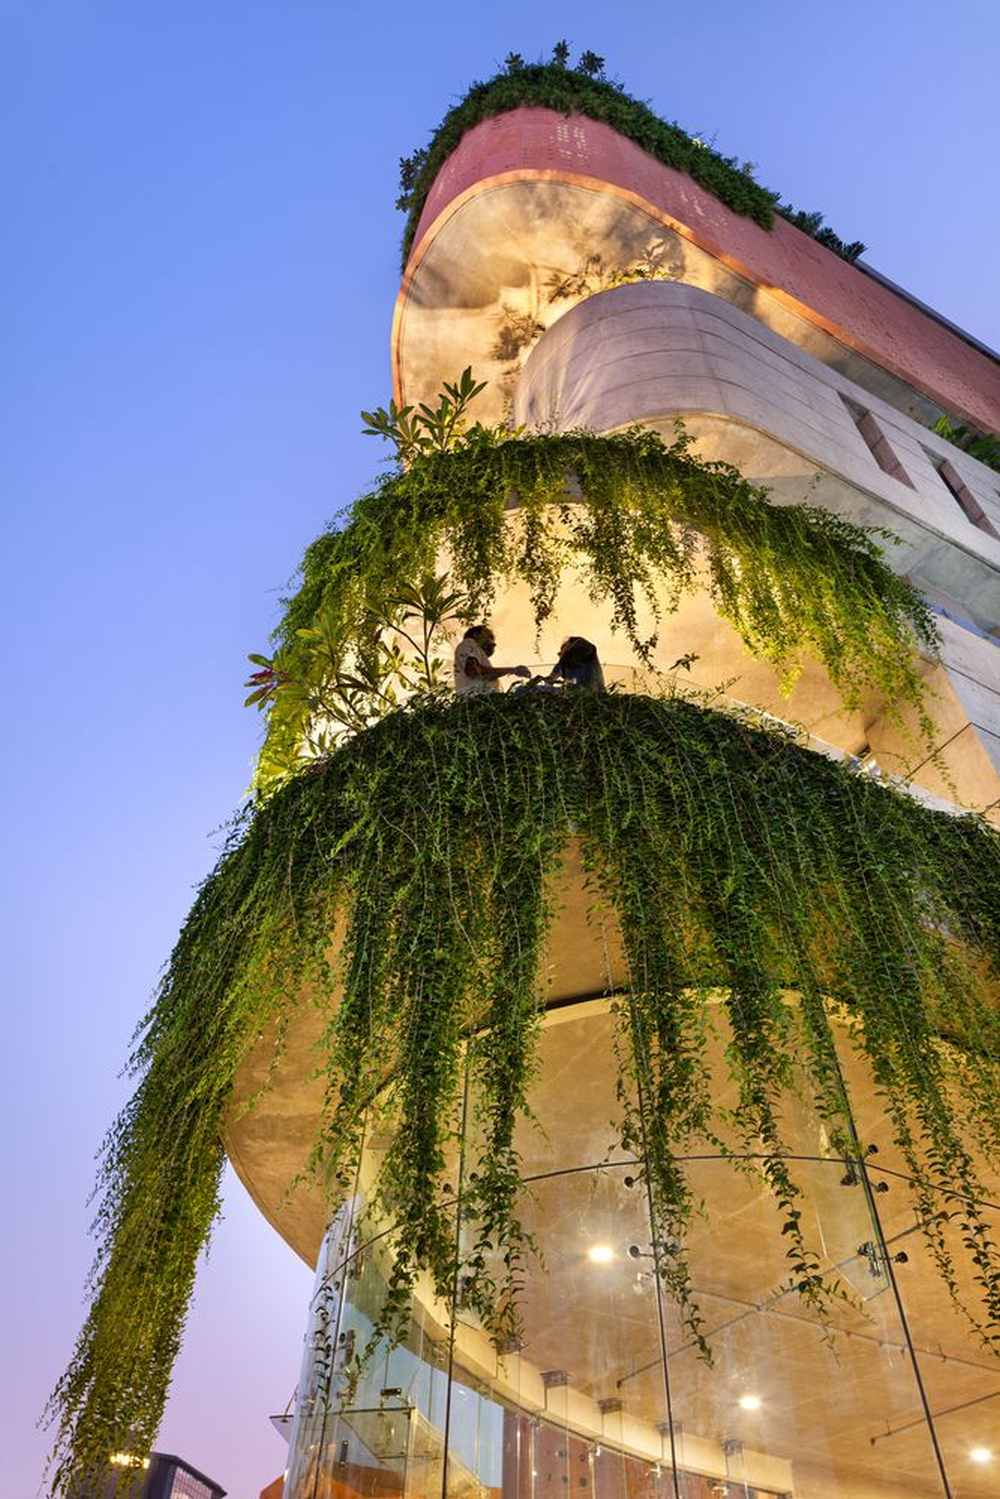 The cantilevered sections have balconies with greenery flowing down from them